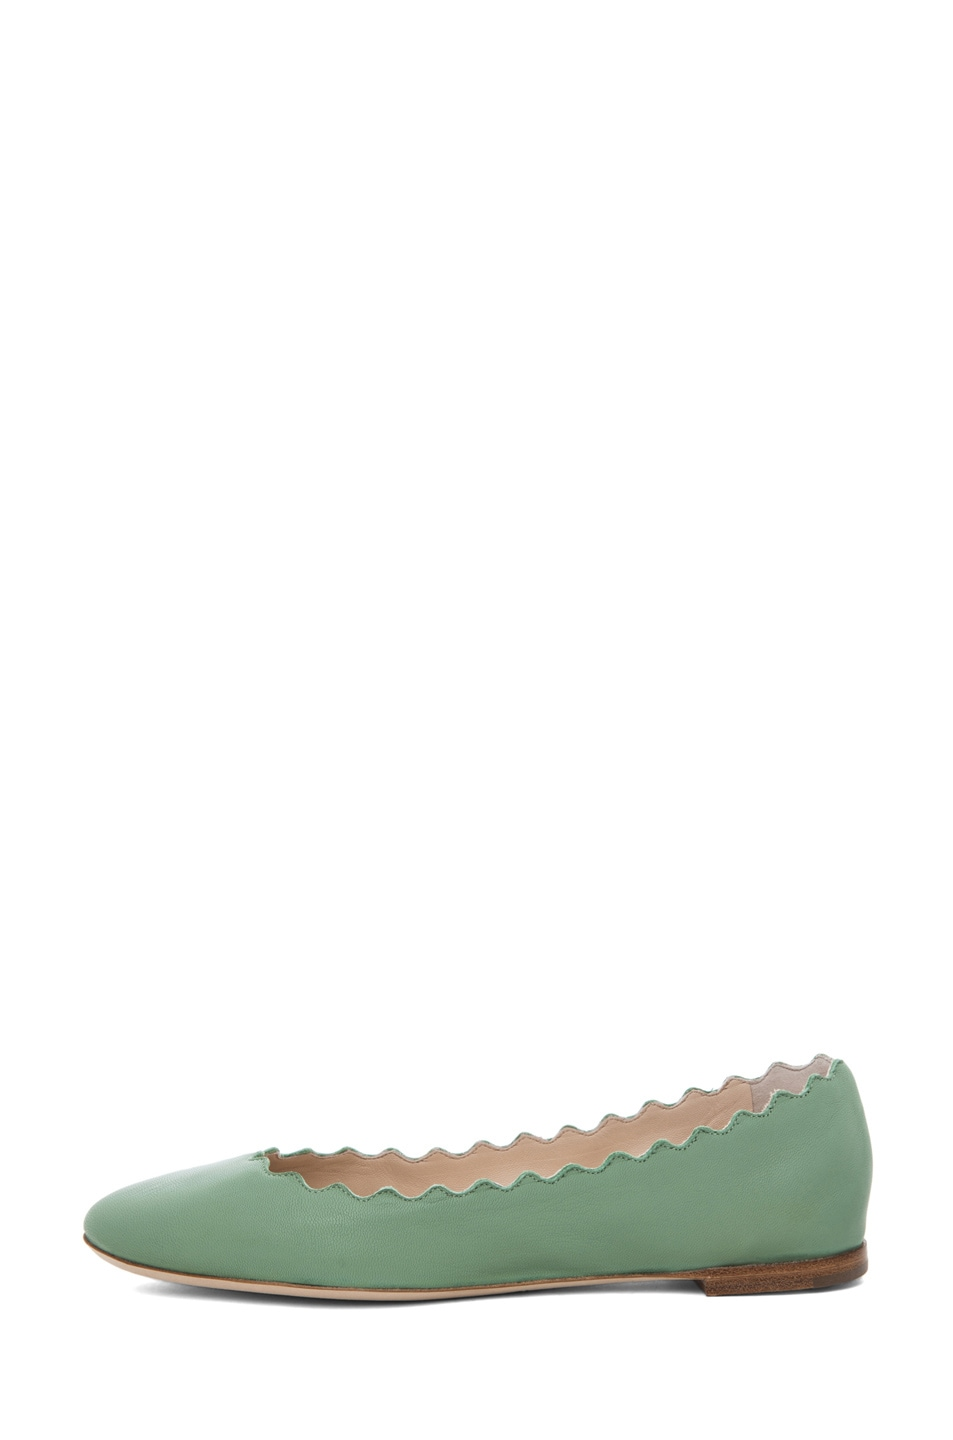 Image 1 of Chloe Lauren Scalloped Flat in Mint